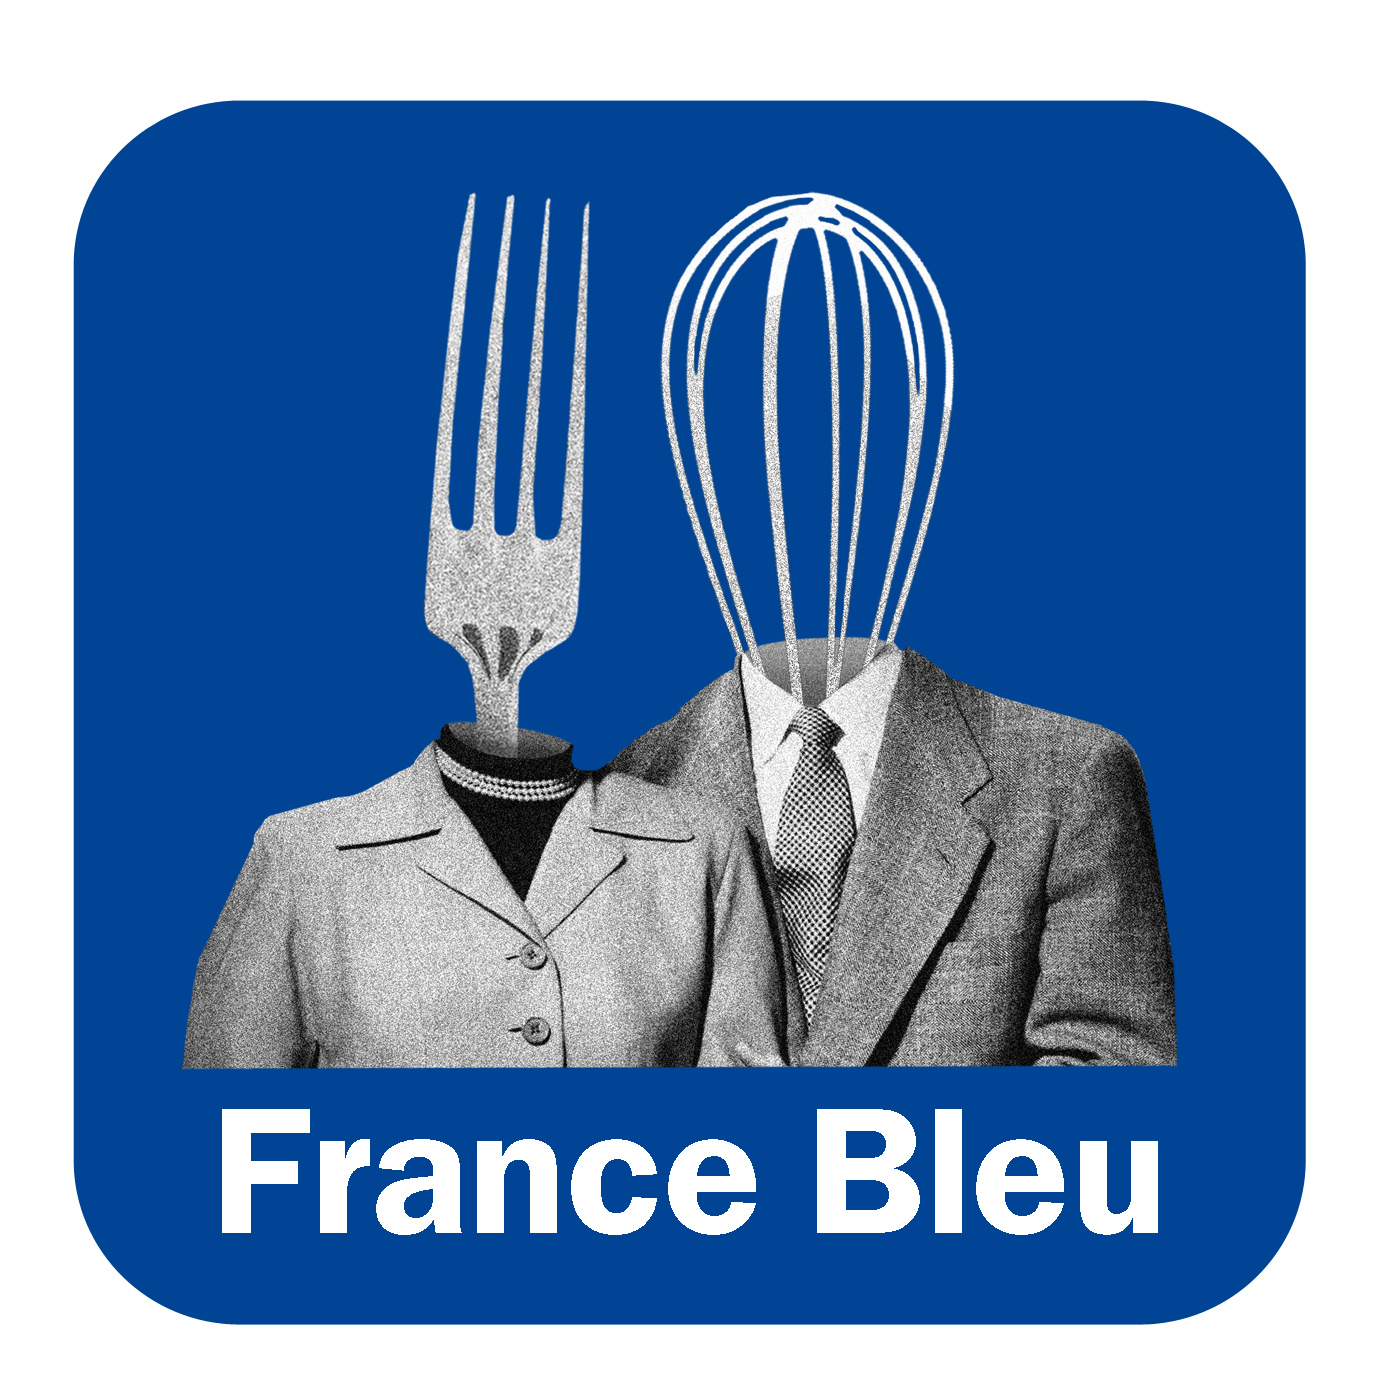 On cuisine ensemble France Bleu Paris